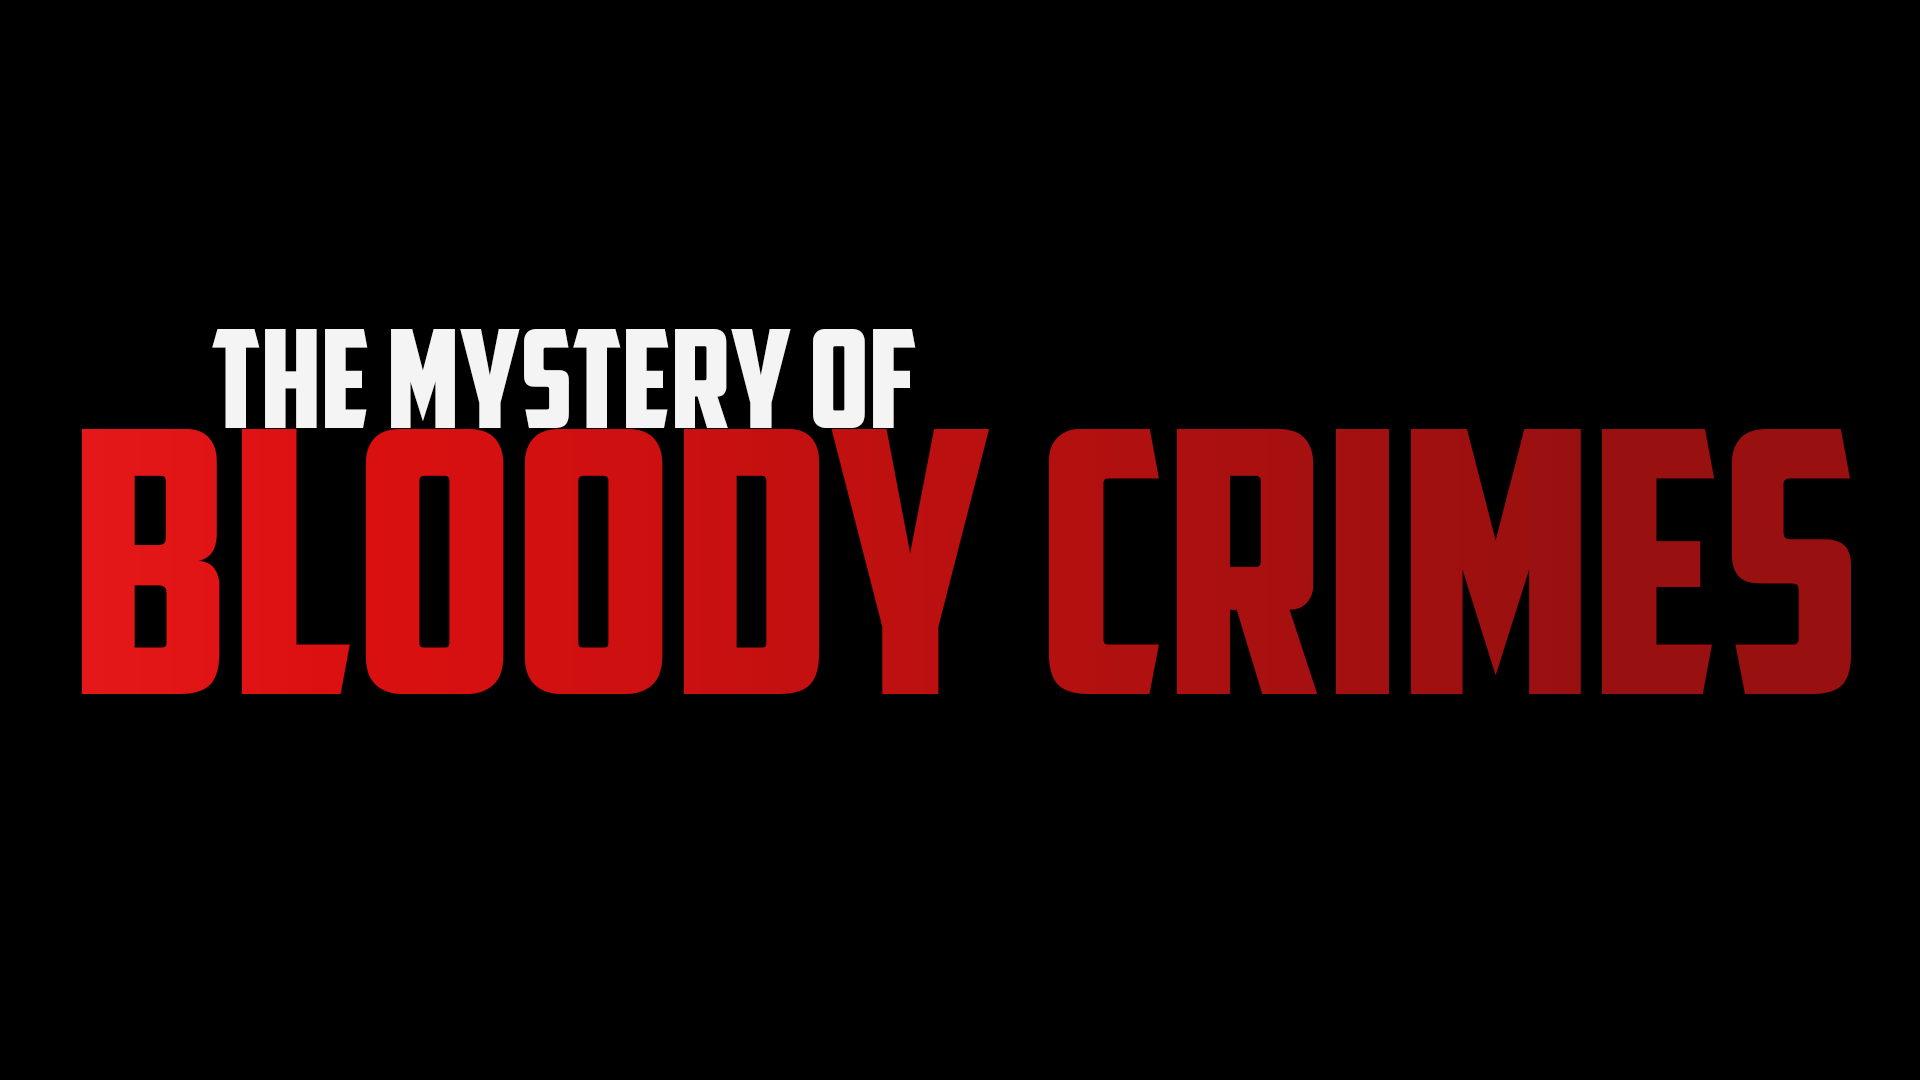 The Mystery of Bloody Crimes